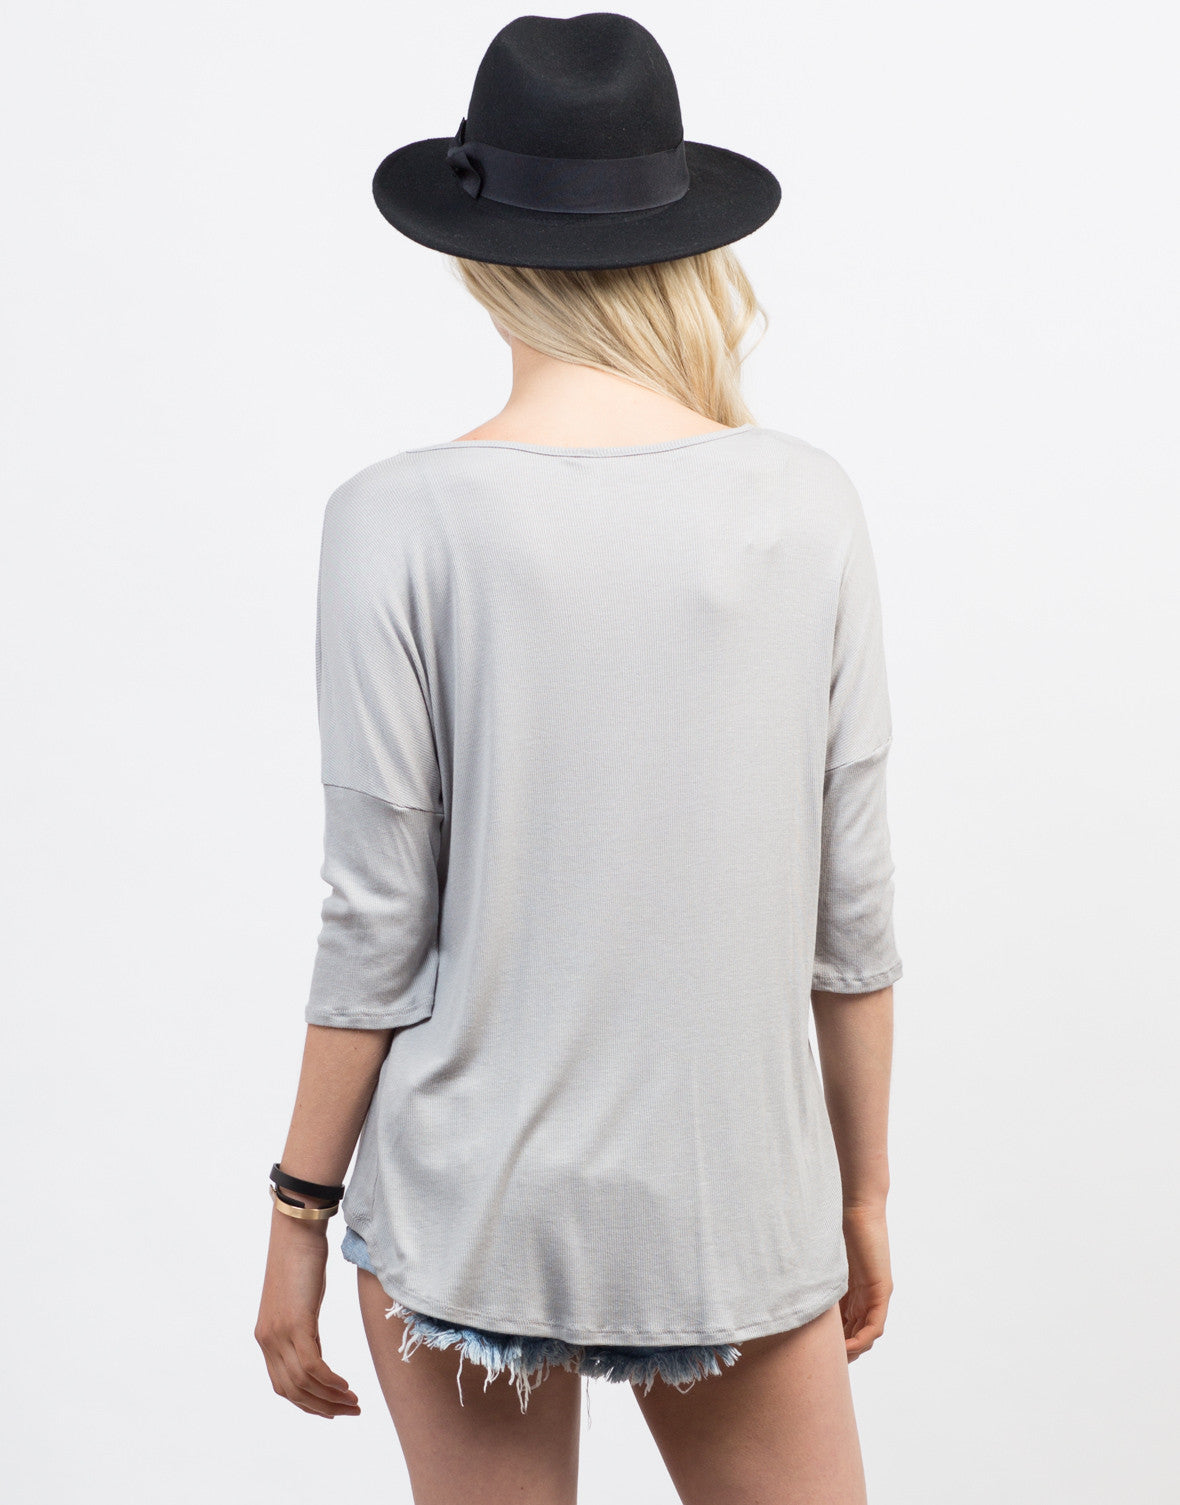 Back View of Lazy Sunday Henley Top